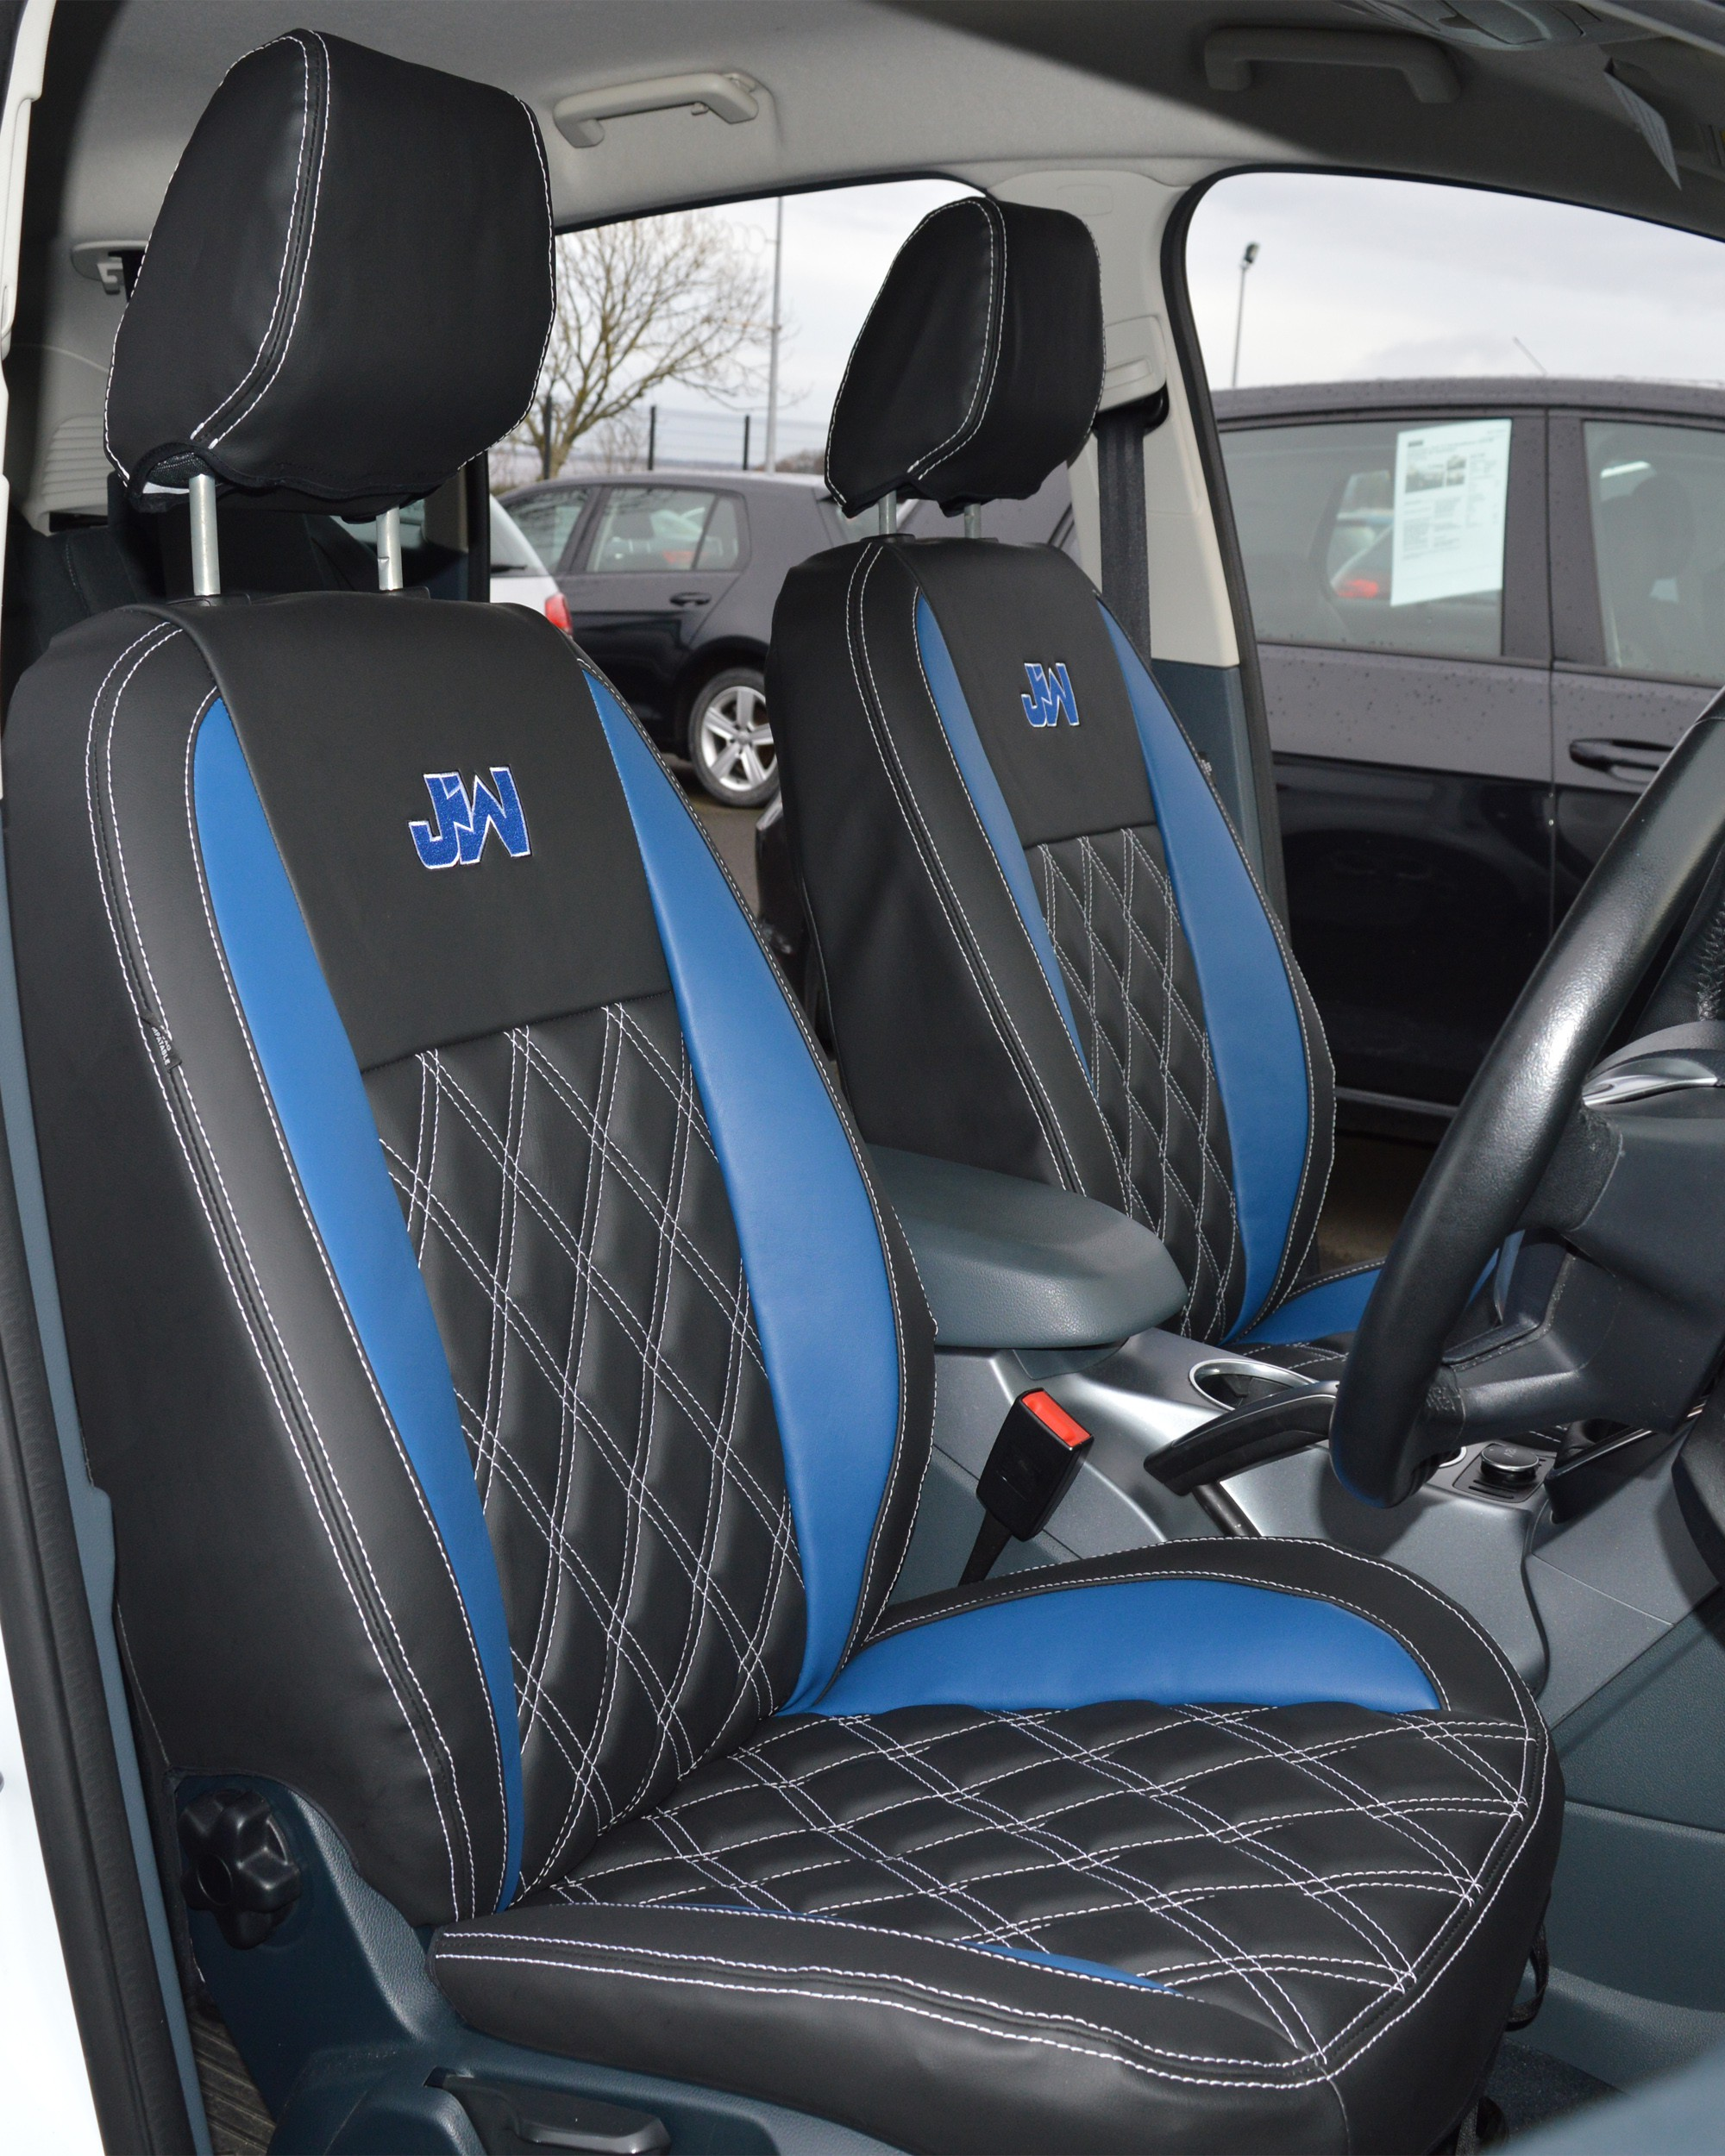 Ford C-Max Waterproof Tailored Car Seat Cover With Diamond Quilting